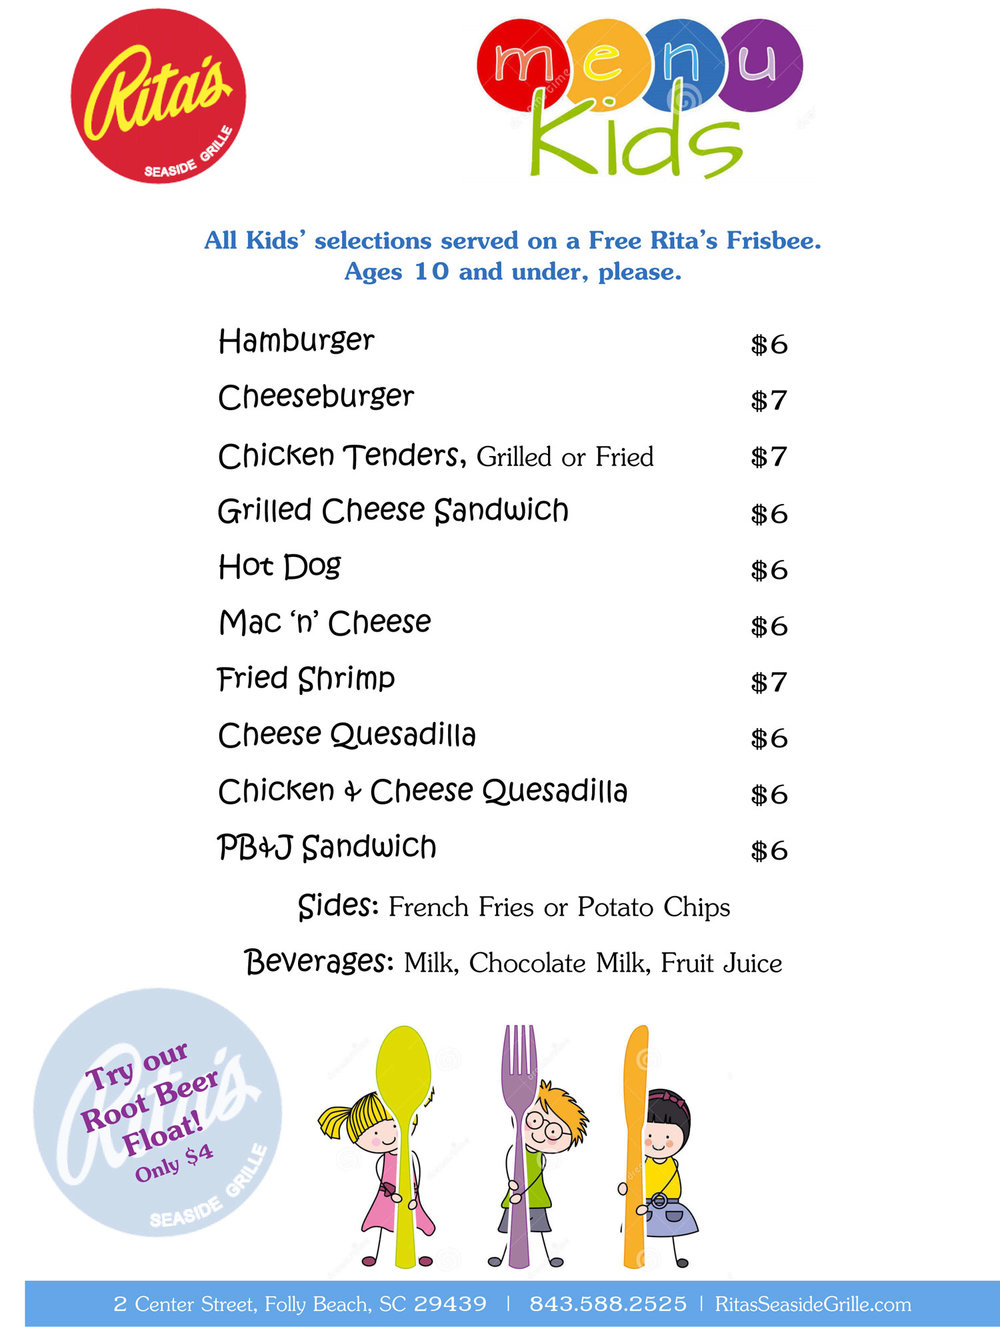 Rita's Seaside Grille Kids Menu